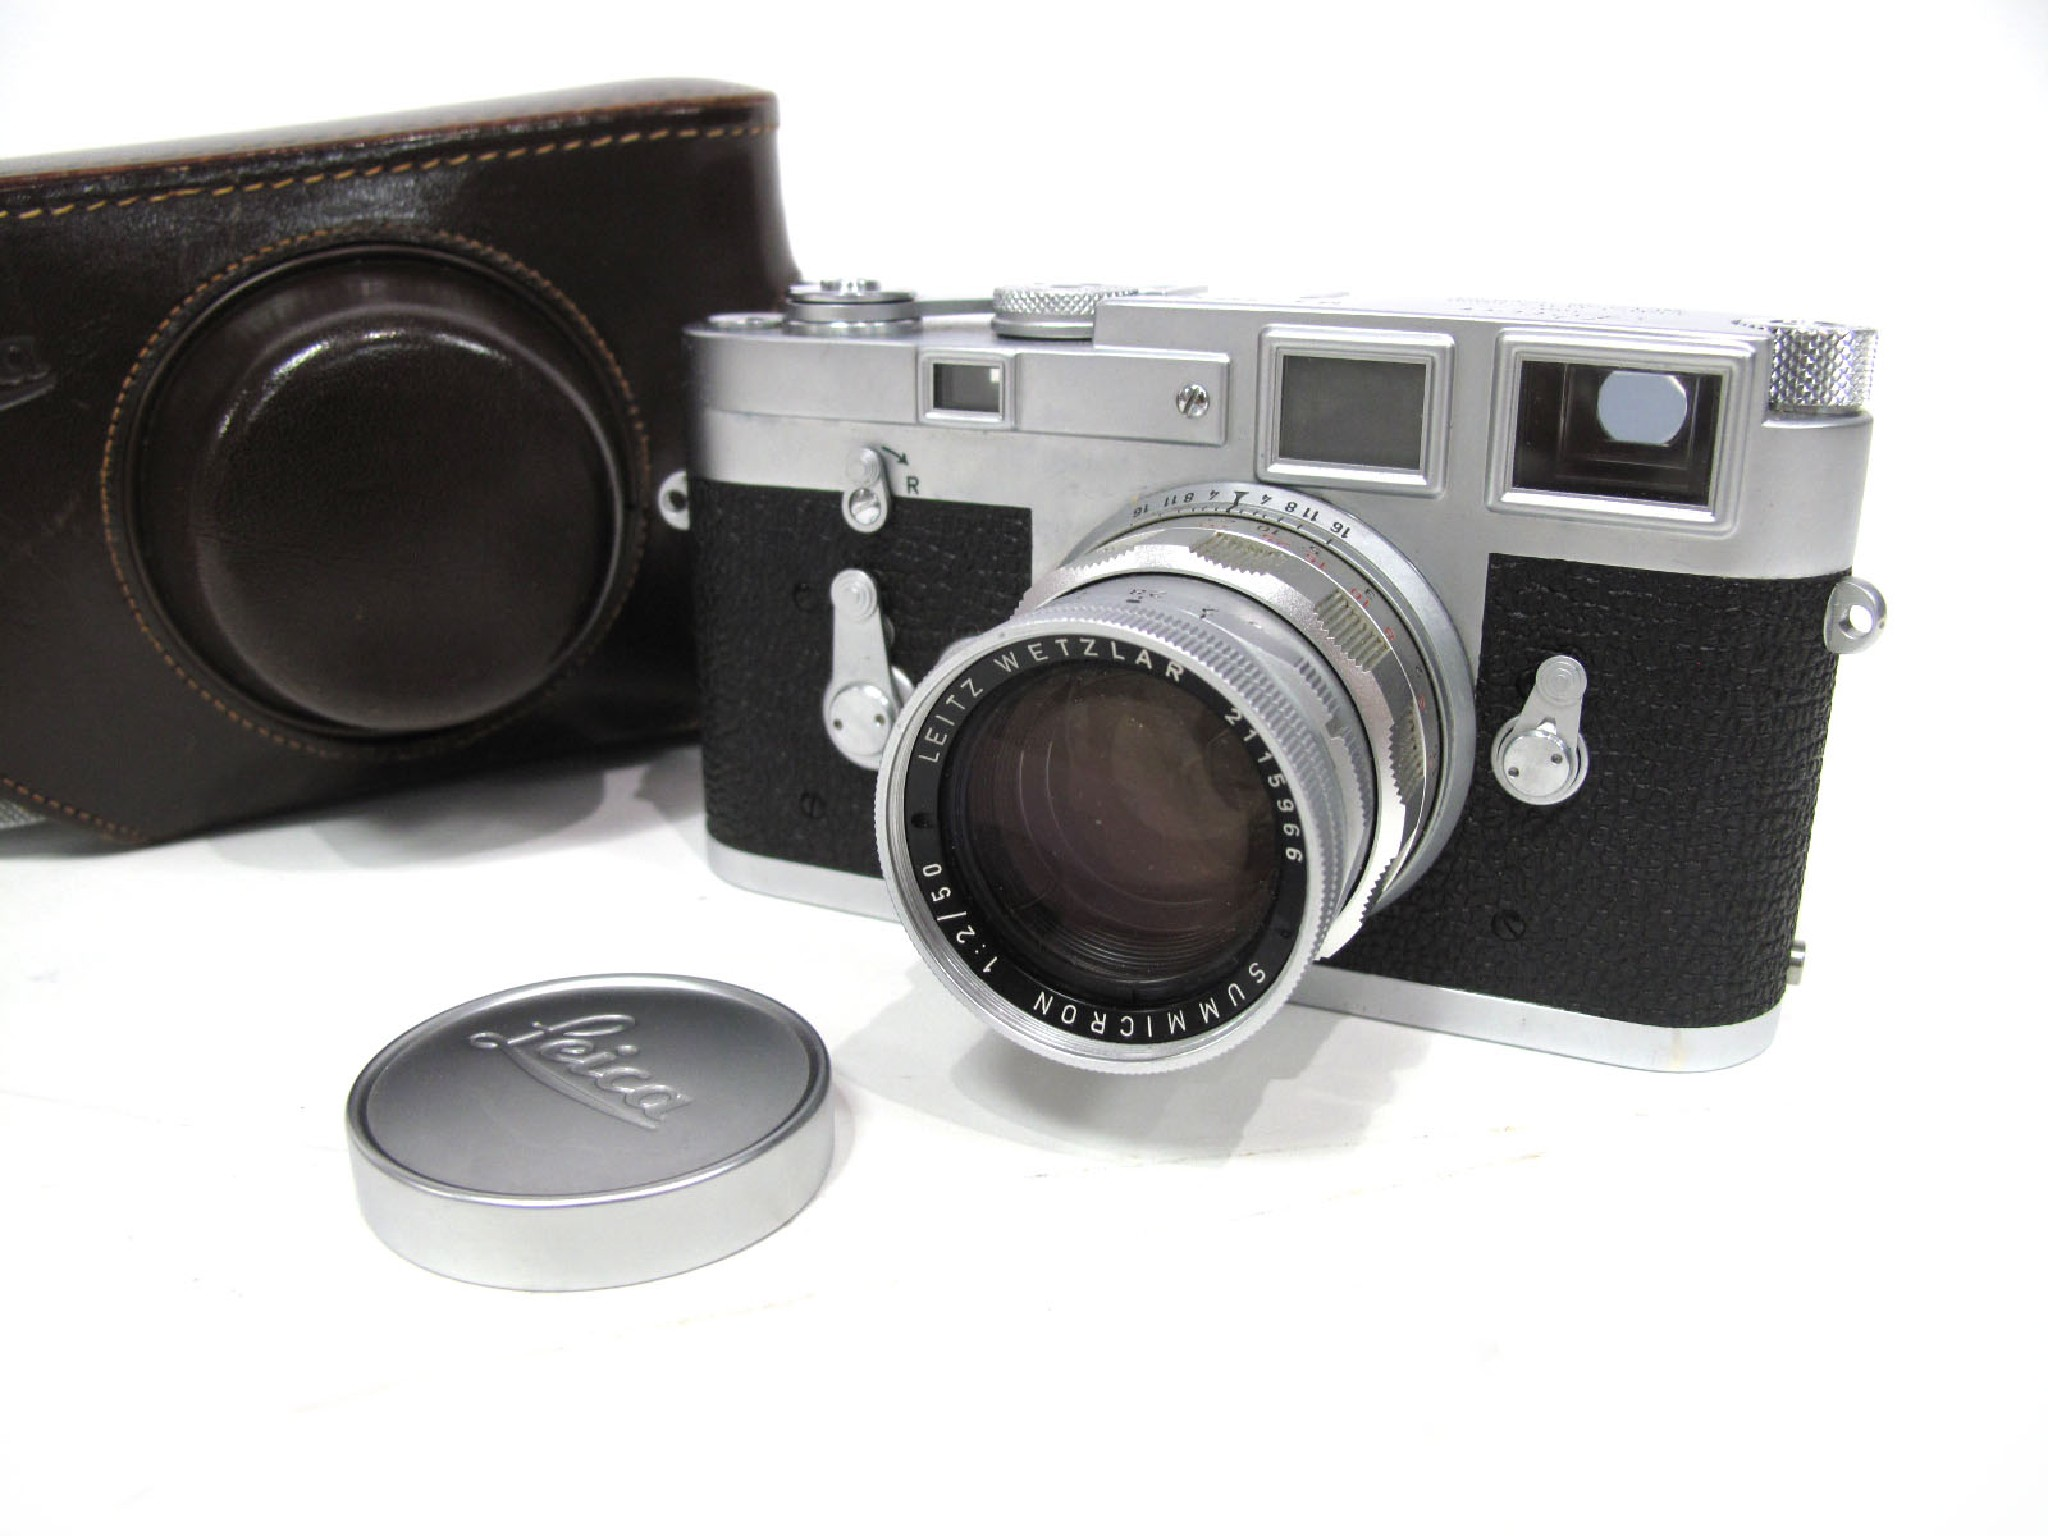 Photographica & Binoculars Auction